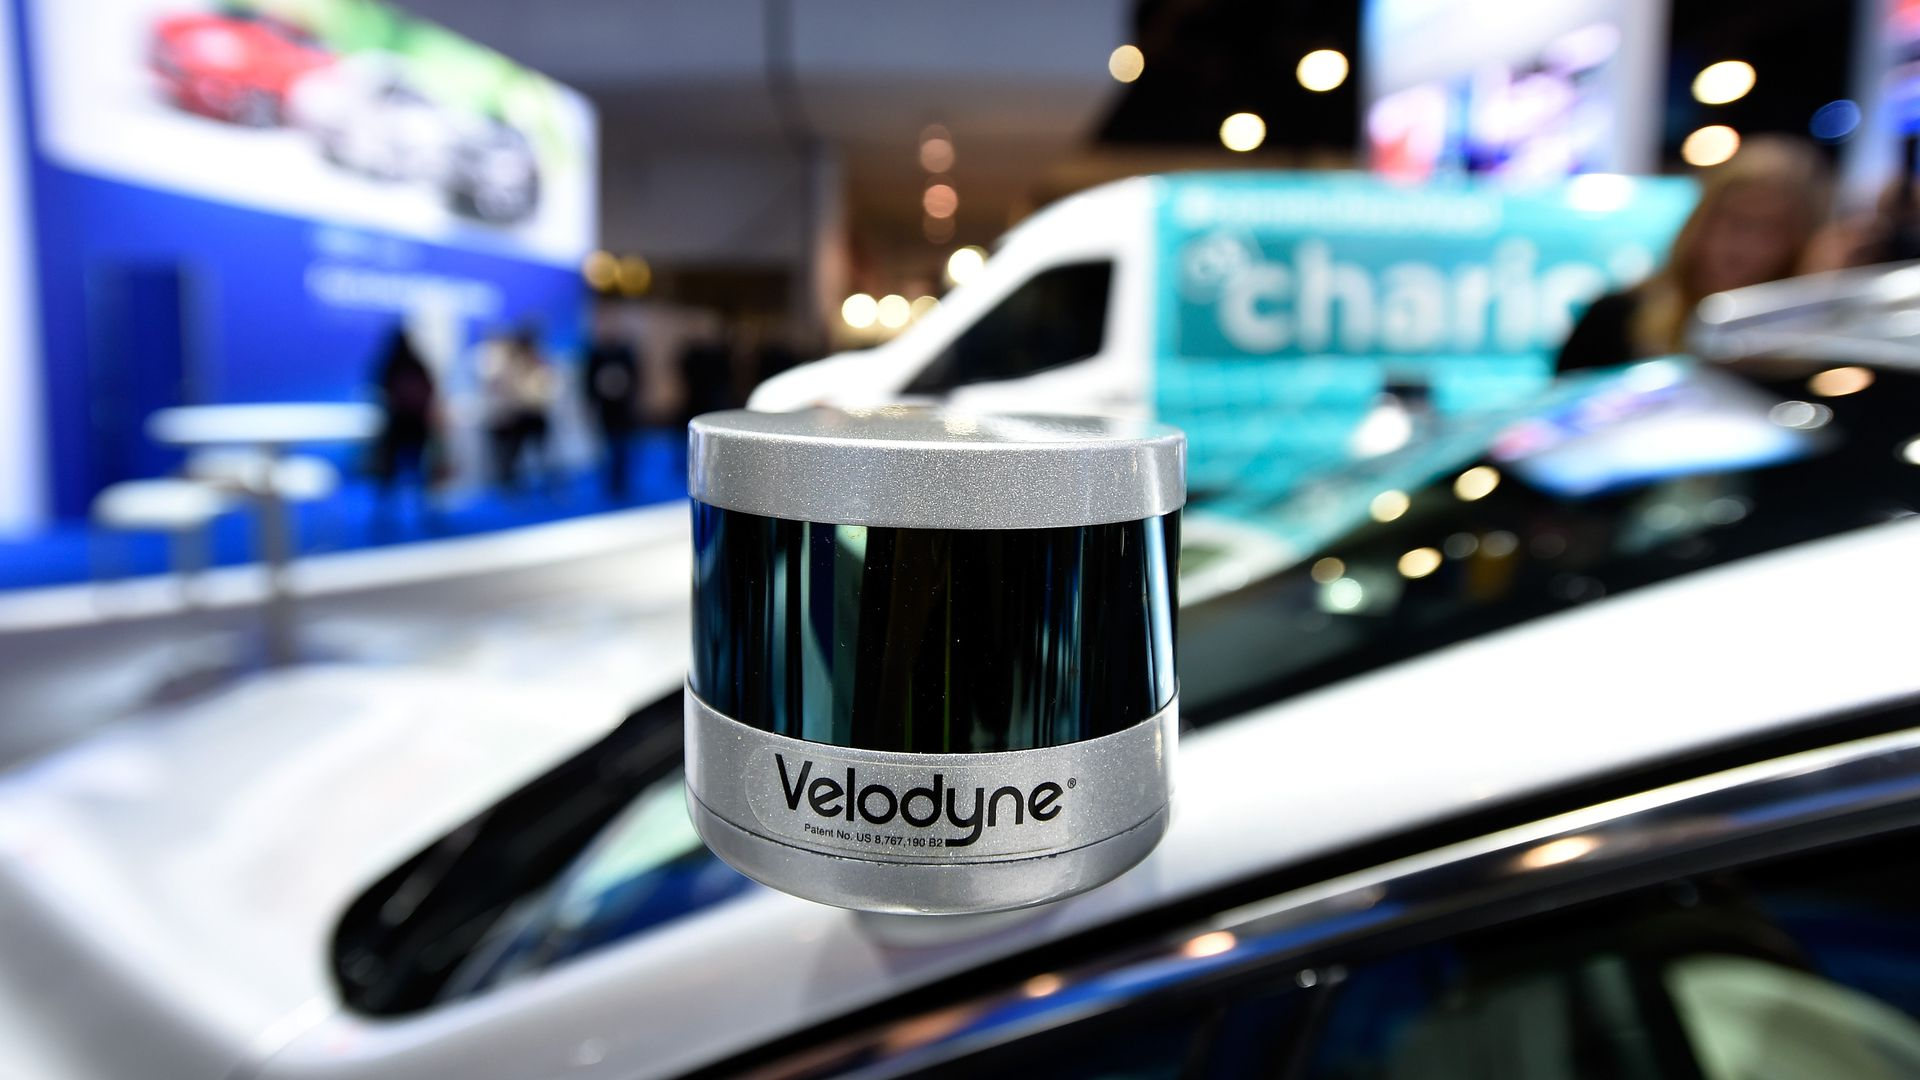 A Velodyne LiDAR sensor is mounted on a Ford Fusion hybrid